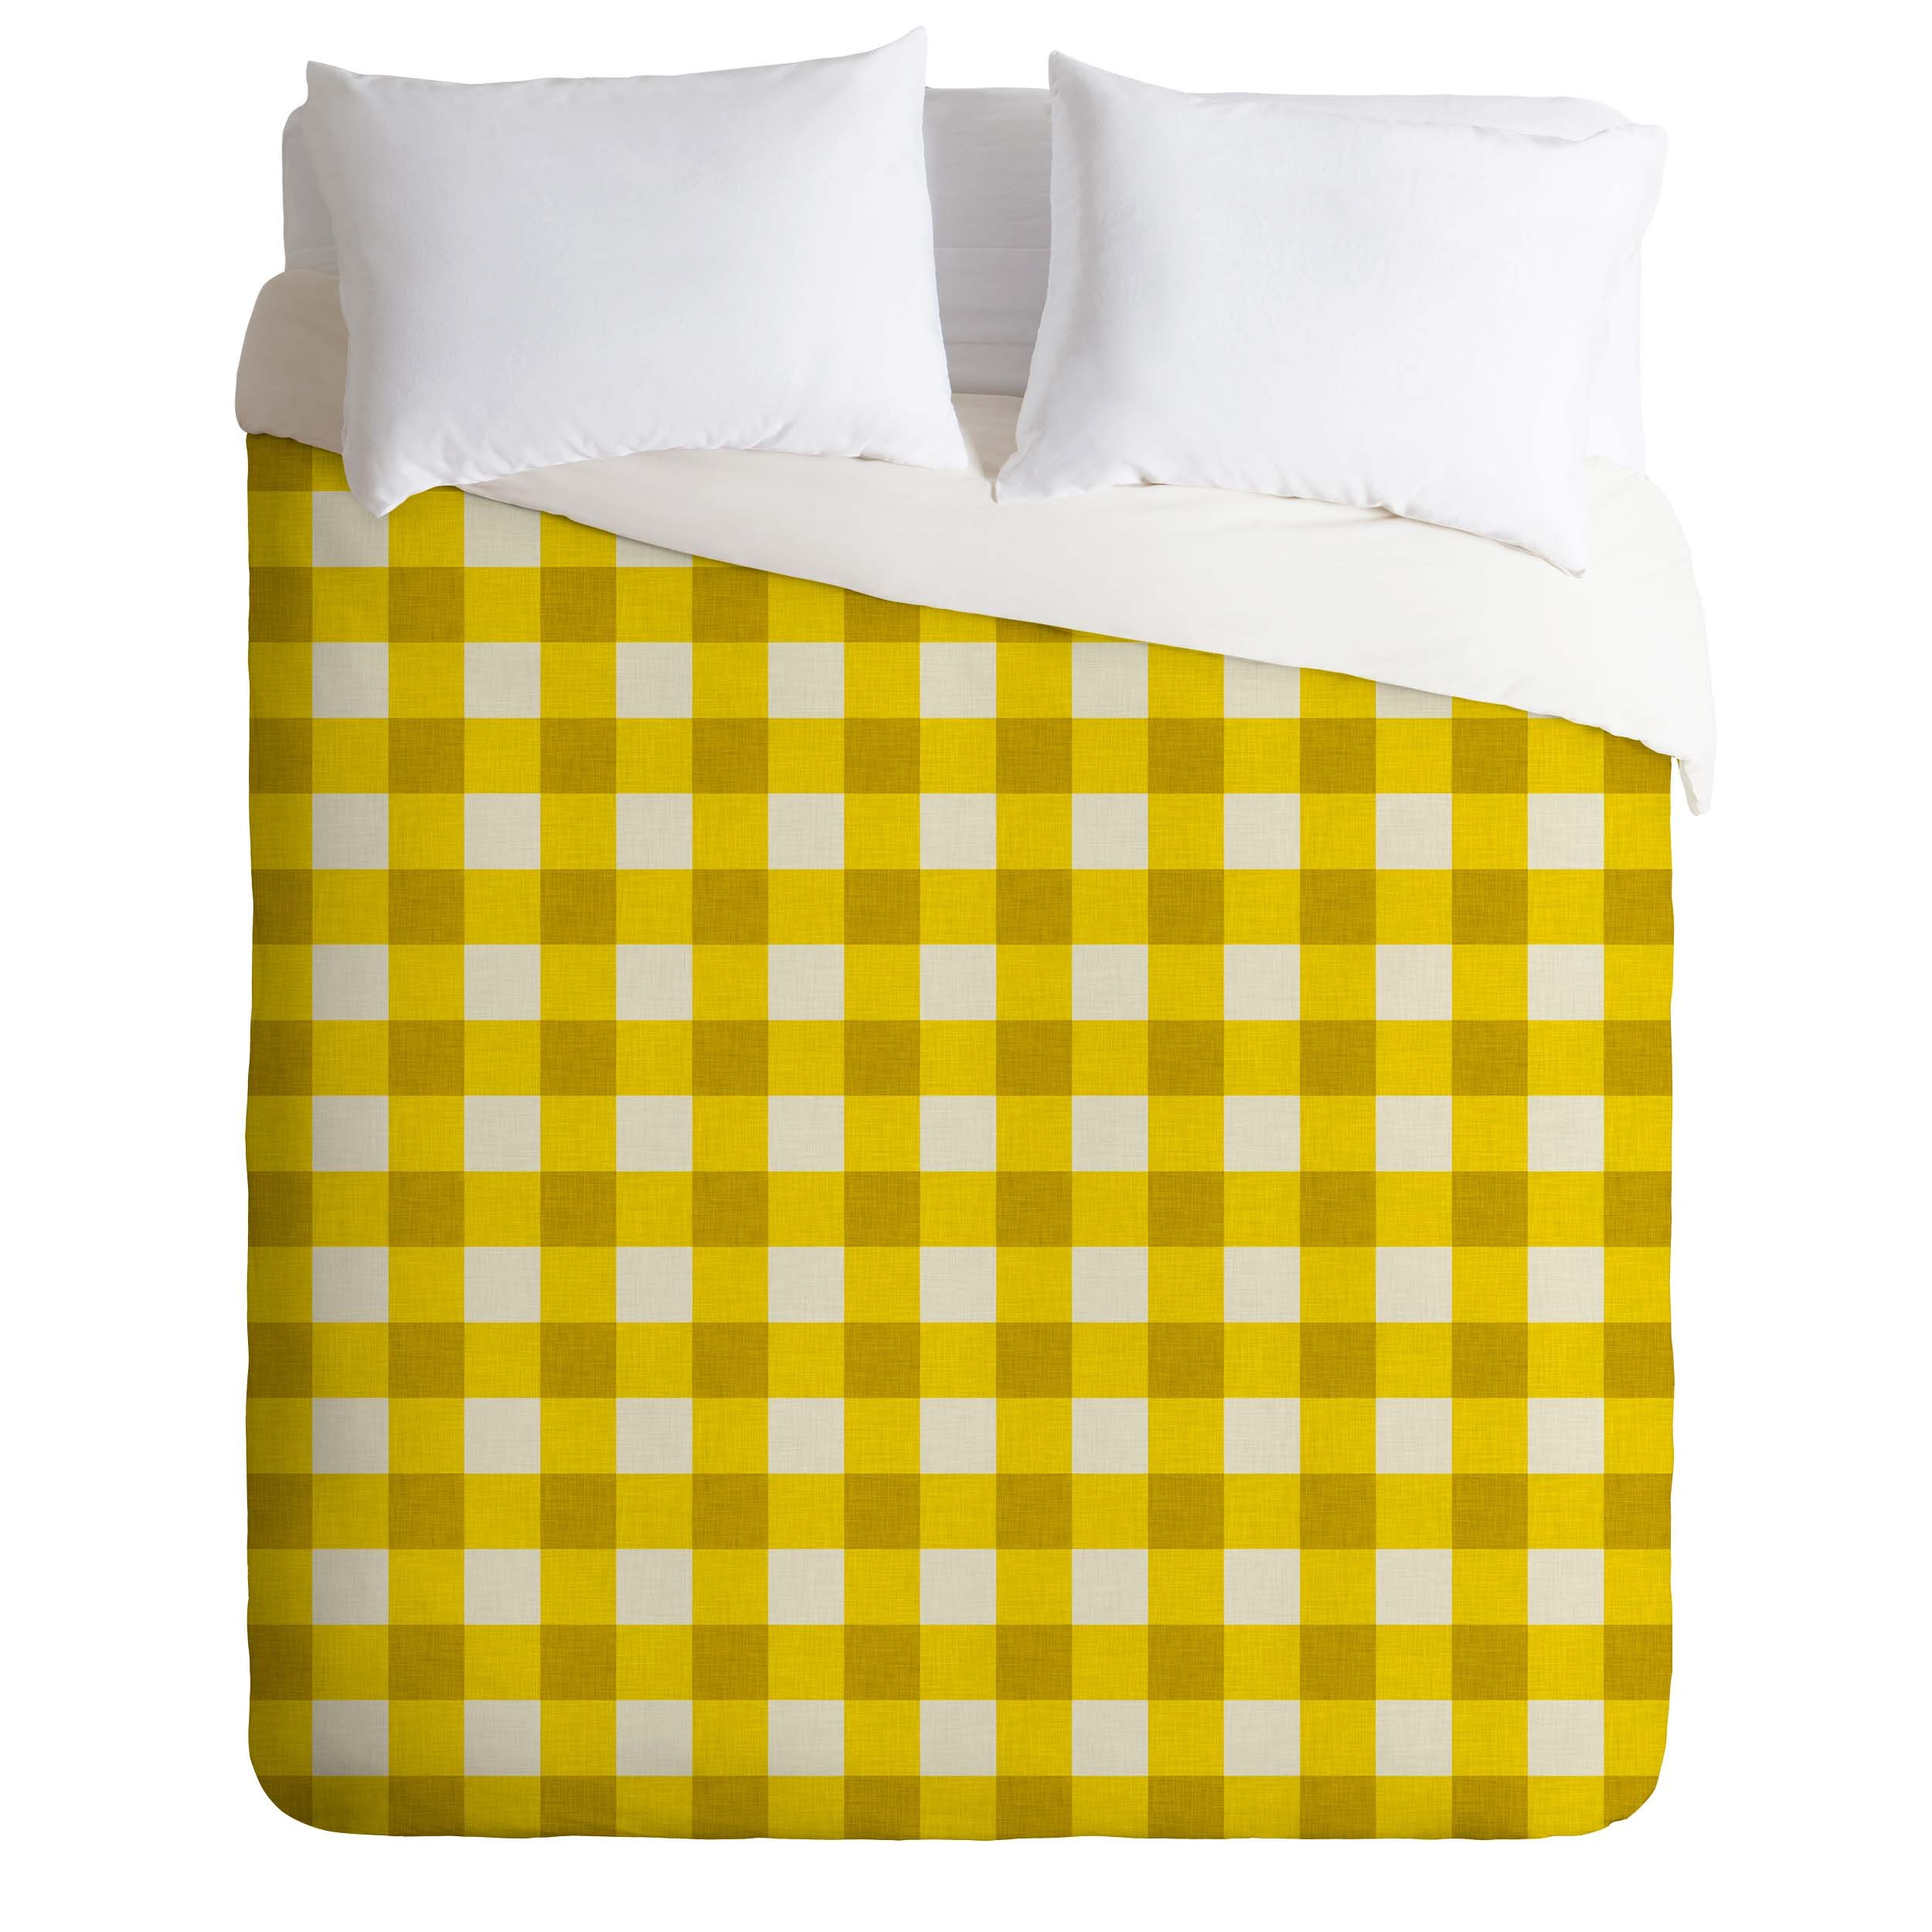 Deny Designs  Holli Zollinger Yellow Gingham Duvet Cover, Twin/Twin XL